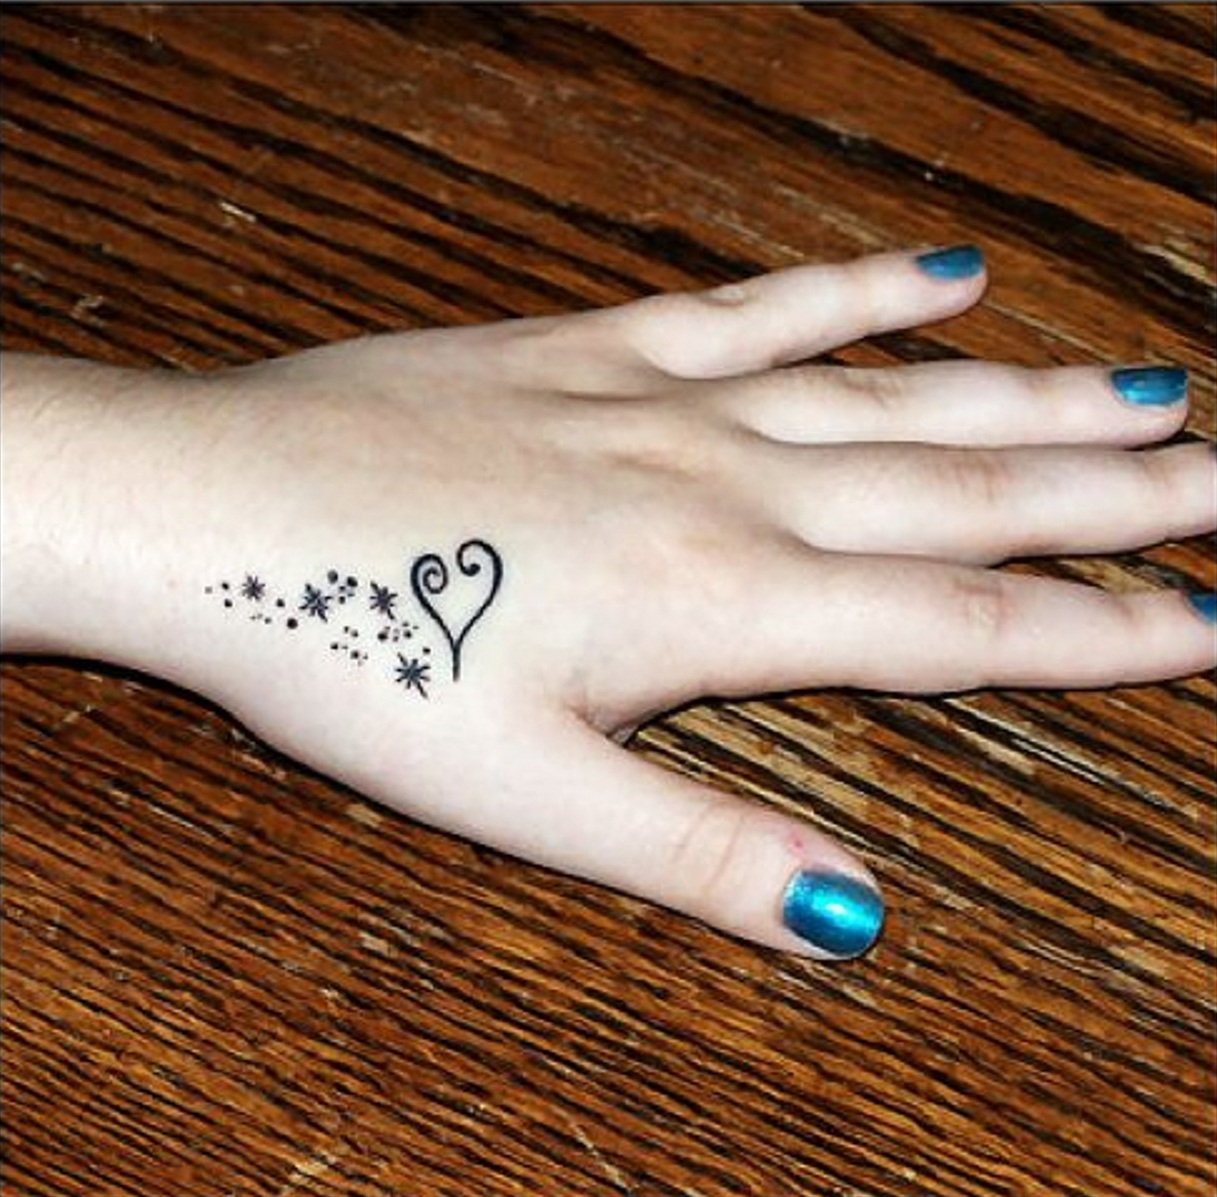 Tattoo Designs For Girls On Hand: Love Tattoos Designs, Ideas And Meaning